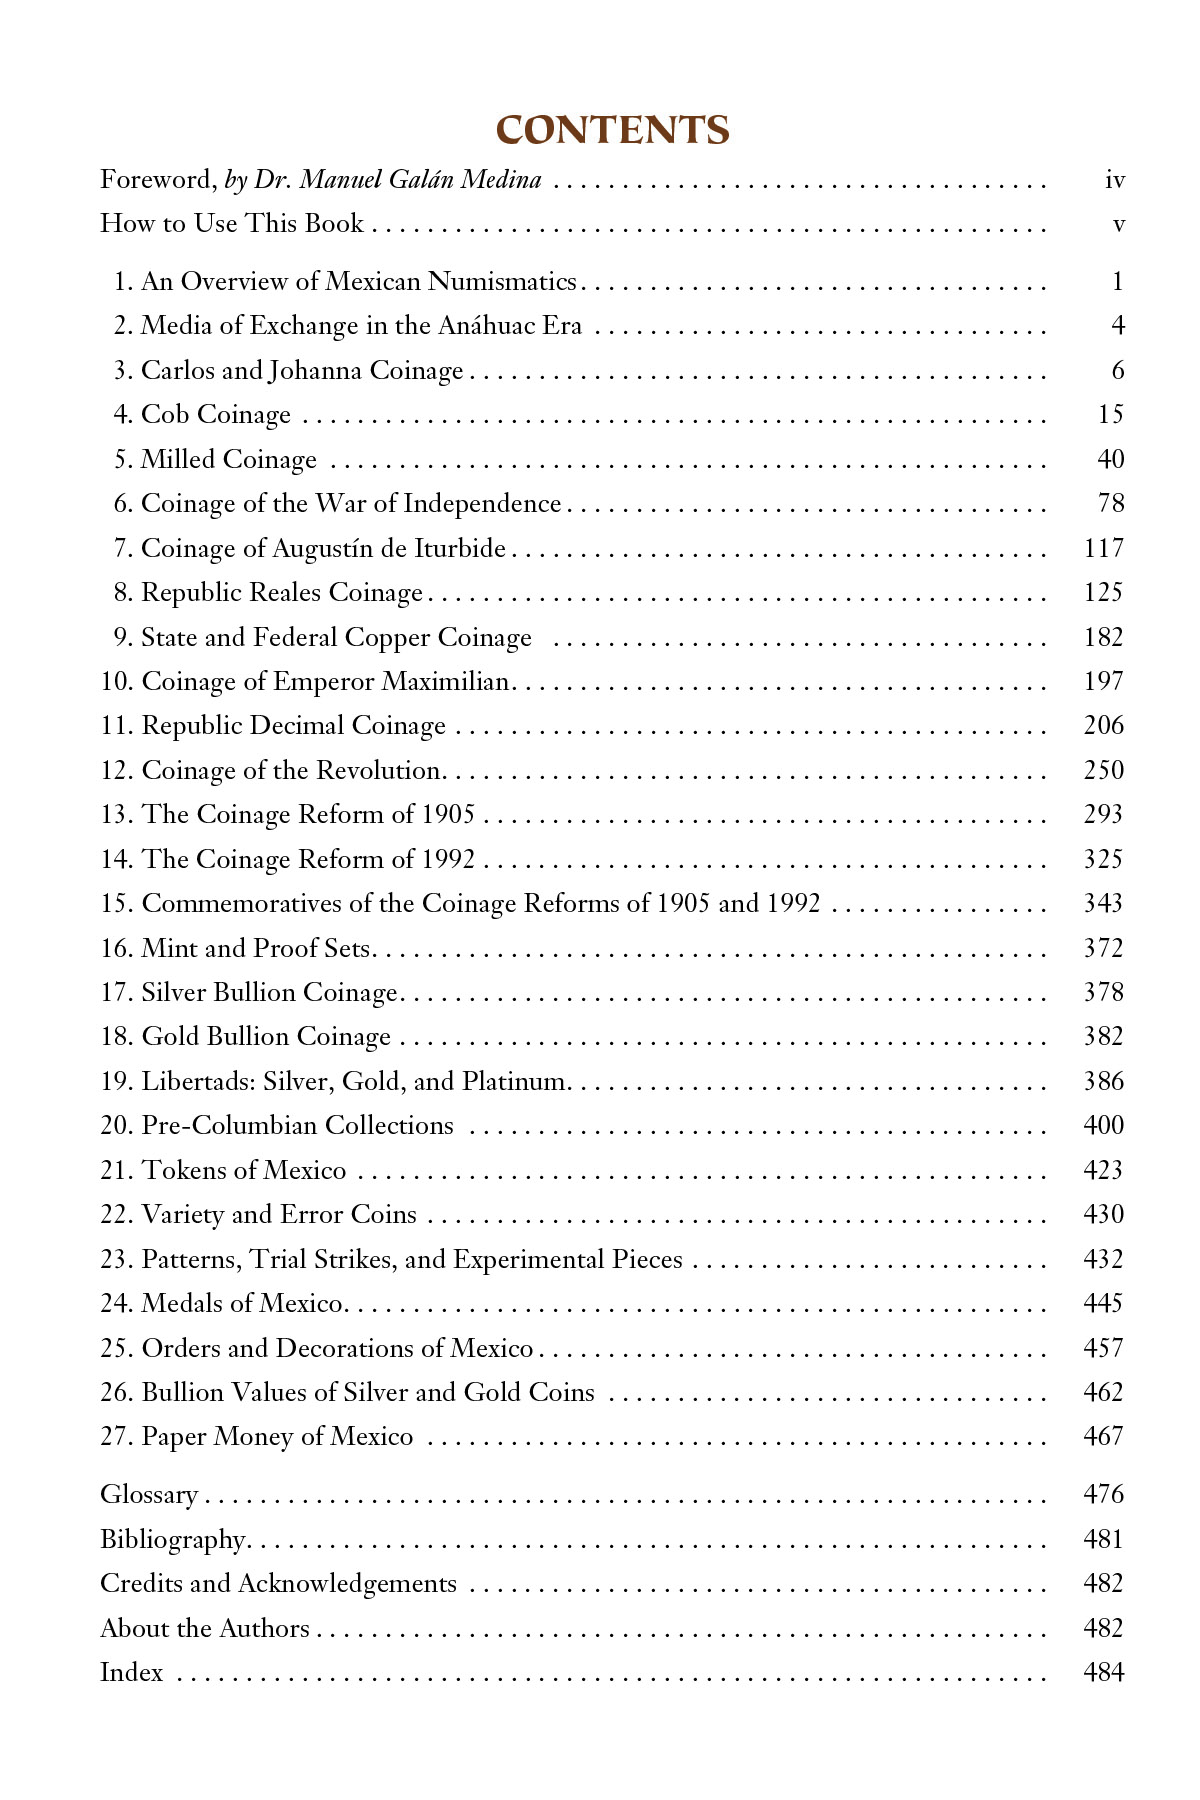 Encyclopedia Of Mexican Money Vol 1 Table Of Contents